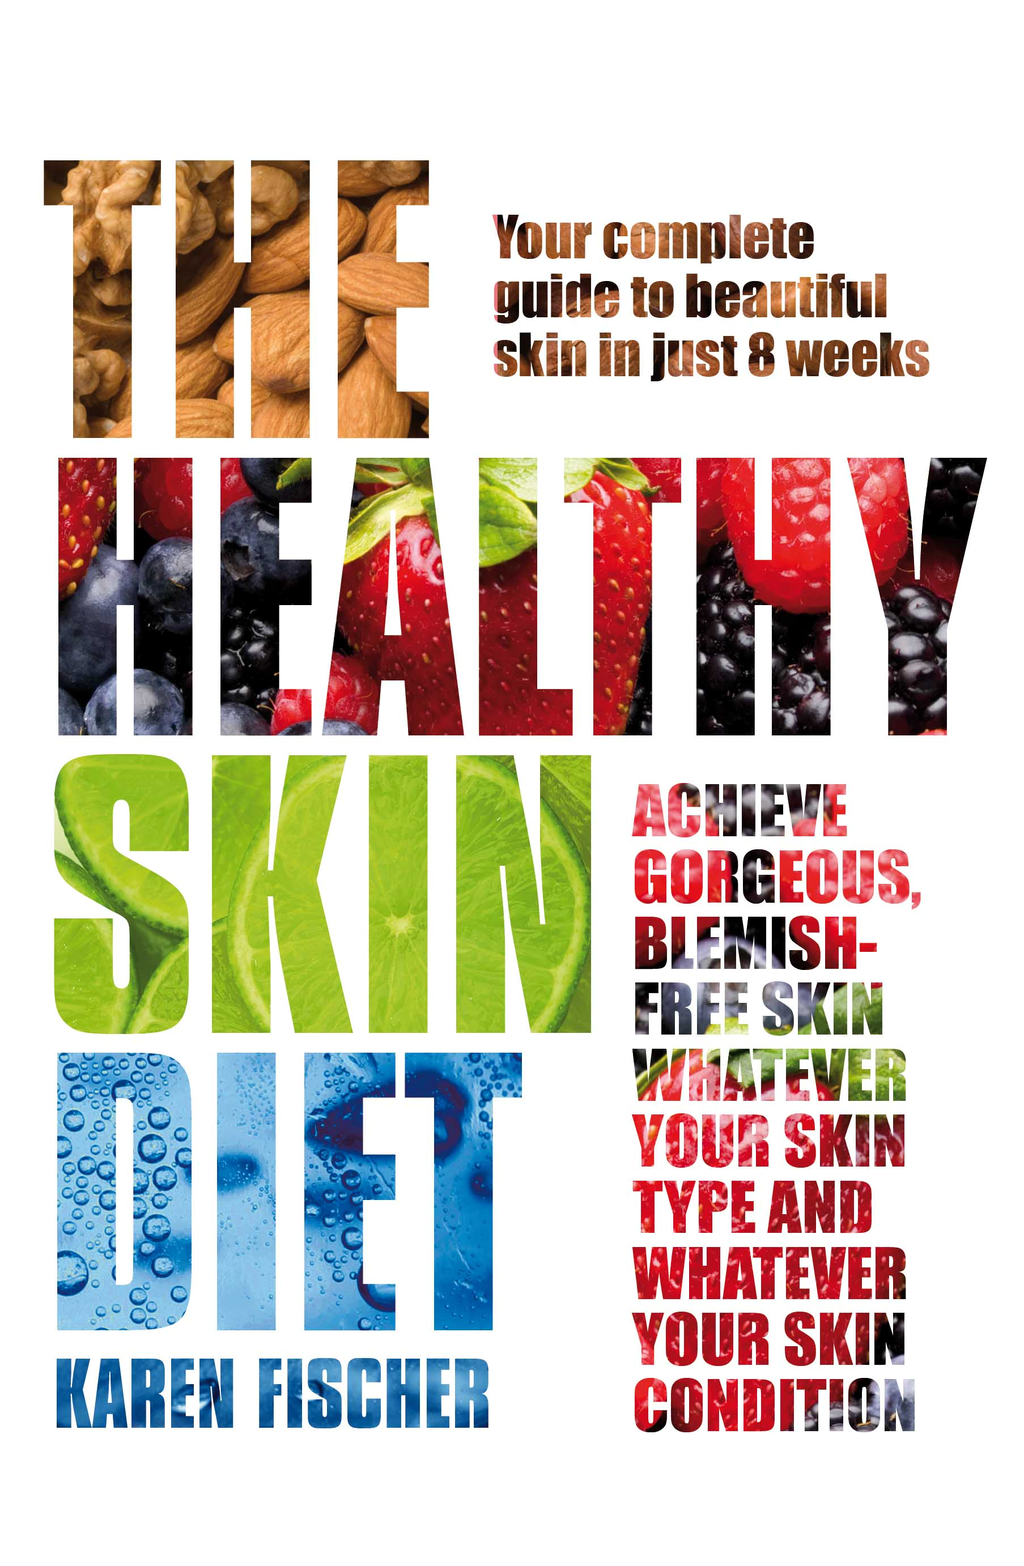 The Healthy Skin Diet Your complete guide to beautiful skin in just 8 weeks!